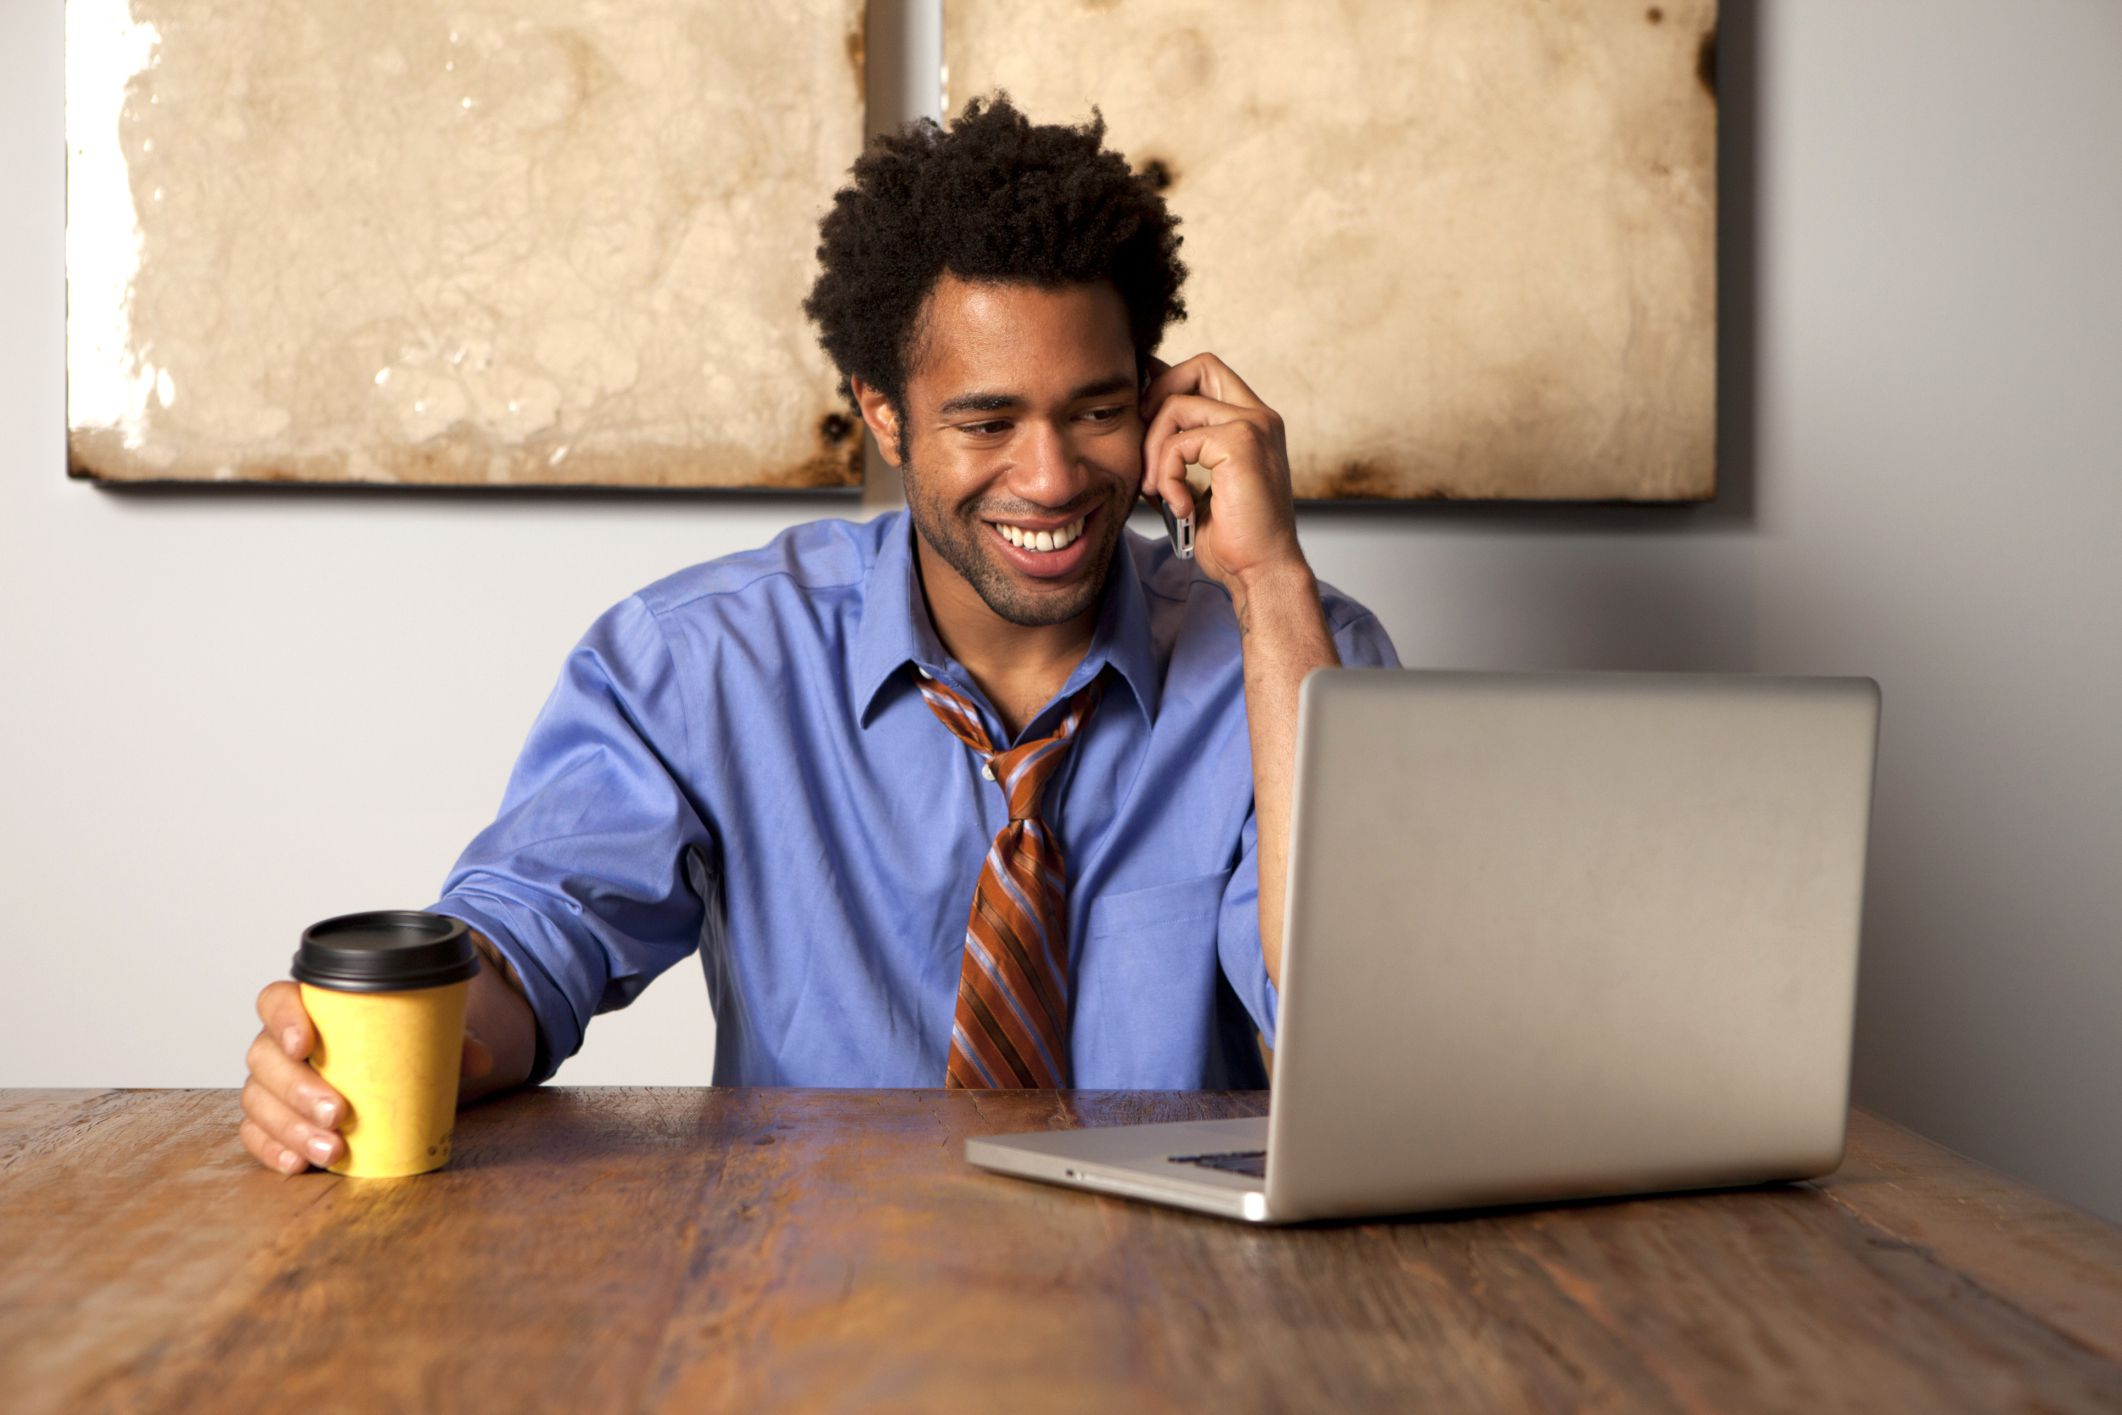 What Are Freelance Jobs You Can Do From Home?